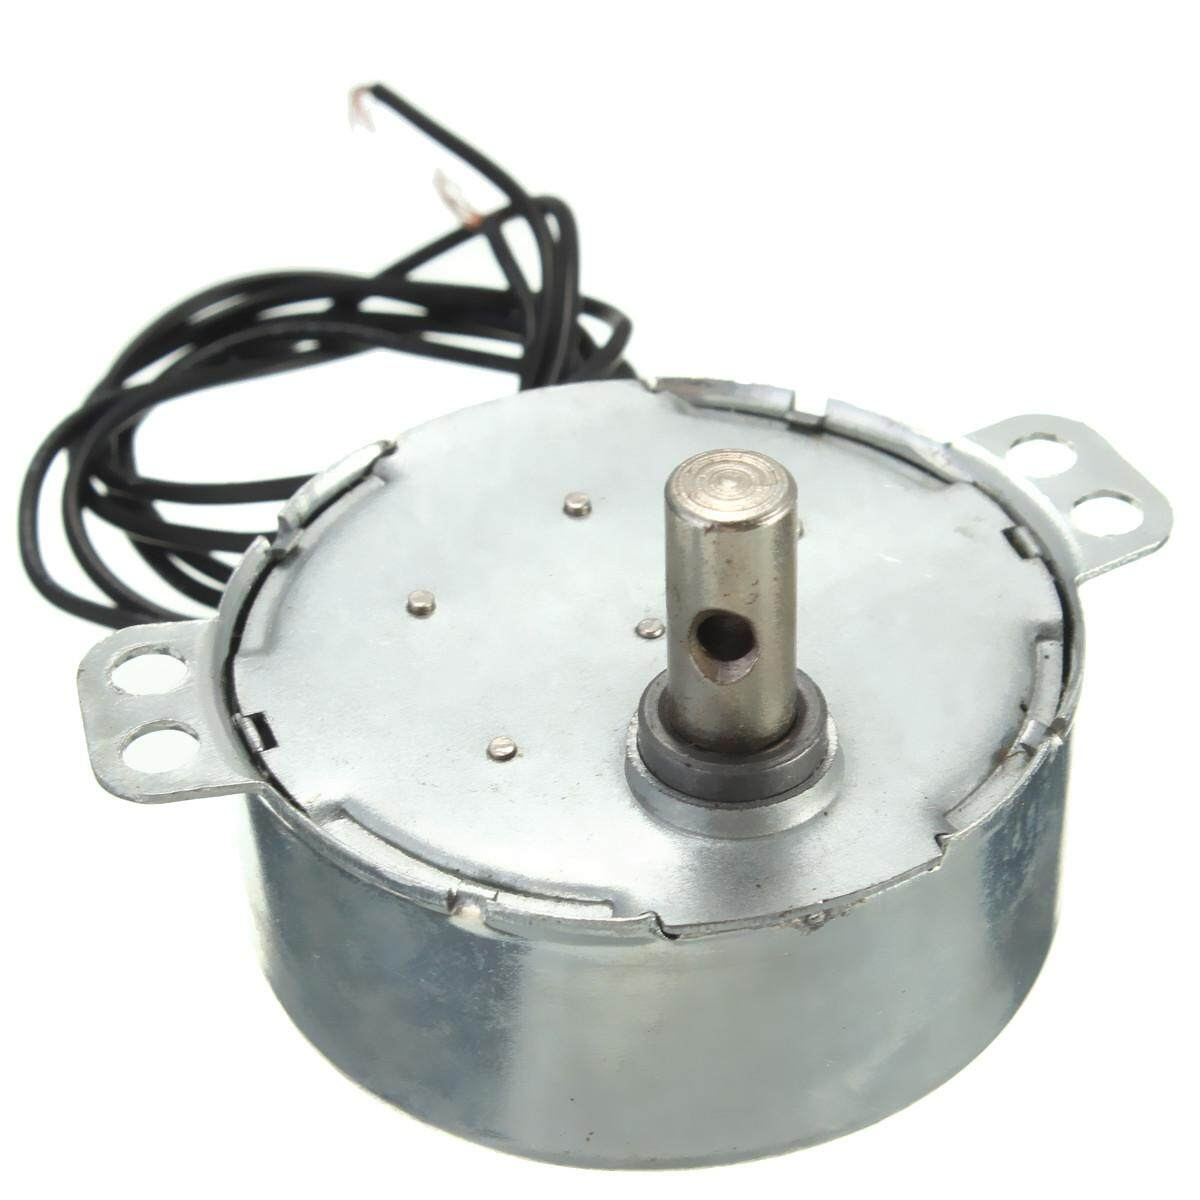 hight resolution of 220 240vac 4w black dual wires 2 5 3rpm min synchronous motor for micro